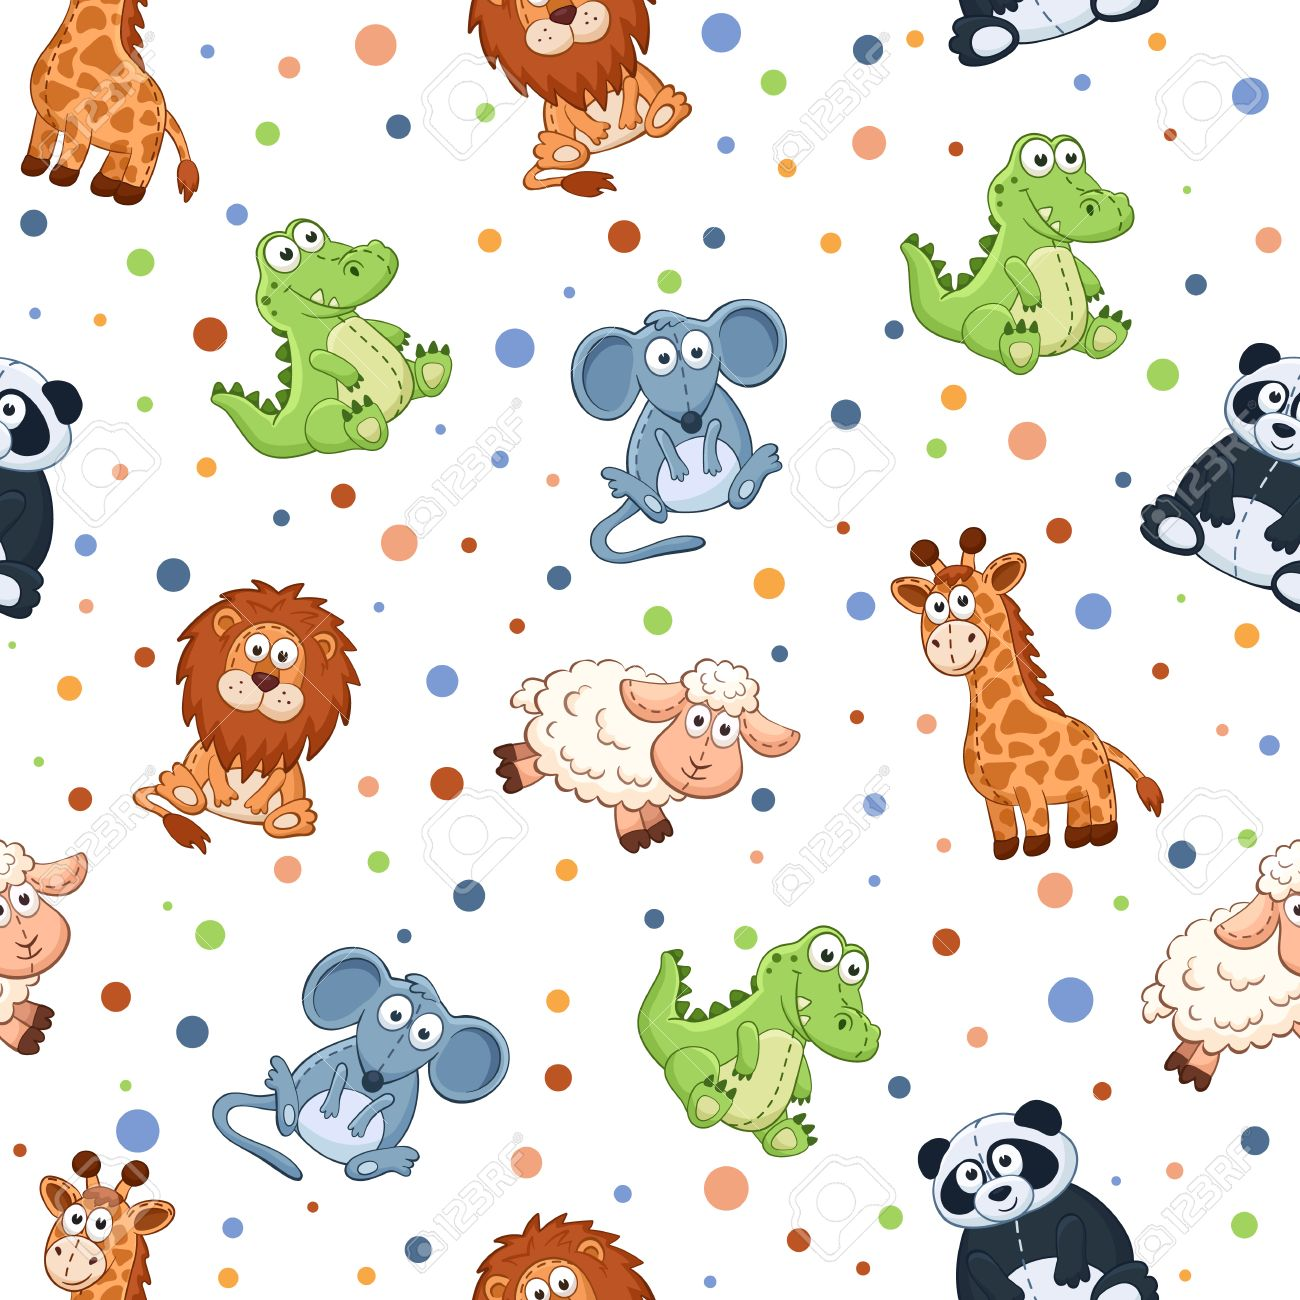 Seamless Pattern With Stuffed Toys Cute Cartoon Animals Background